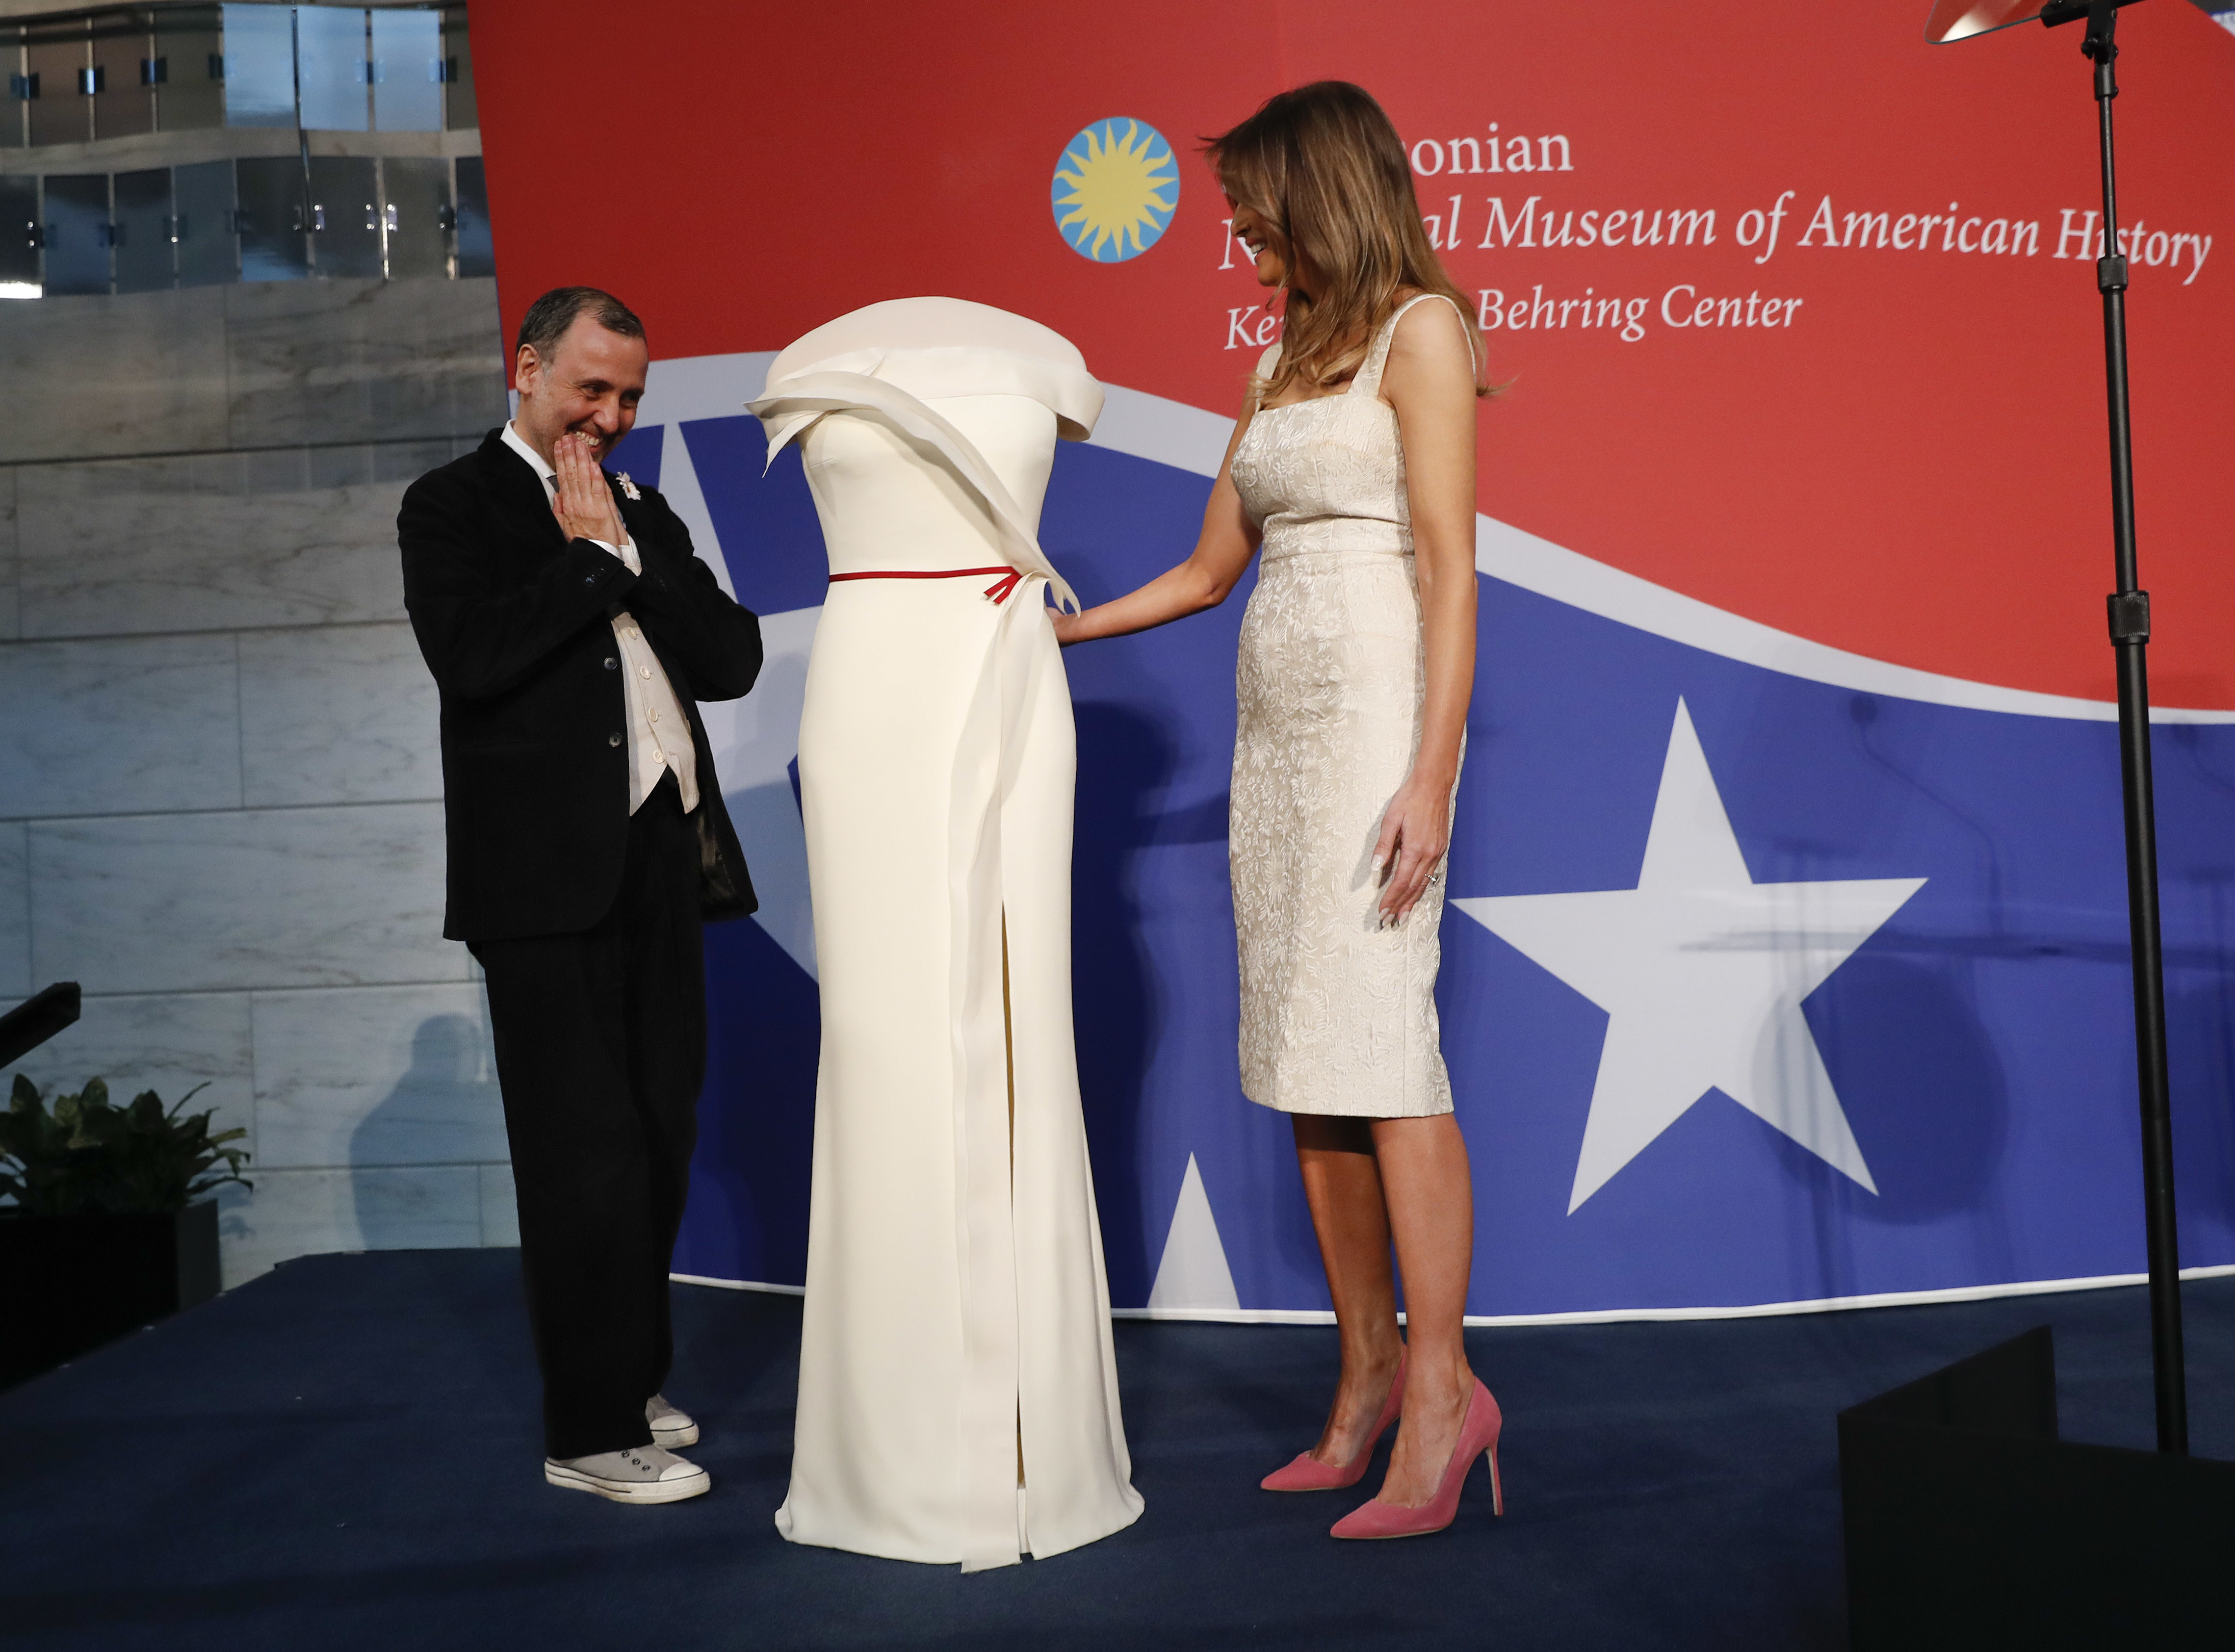 First lady Melania Trump, right, donates her inaugural gown, designed by Herve Pierre, right, to the First Ladies' Collection at the Smithsonian's National Museum of American History, during a ceremony in Washington, Friday, Oct. 20, 2017. (AP Photo/Pablo Martinez Monsivais)